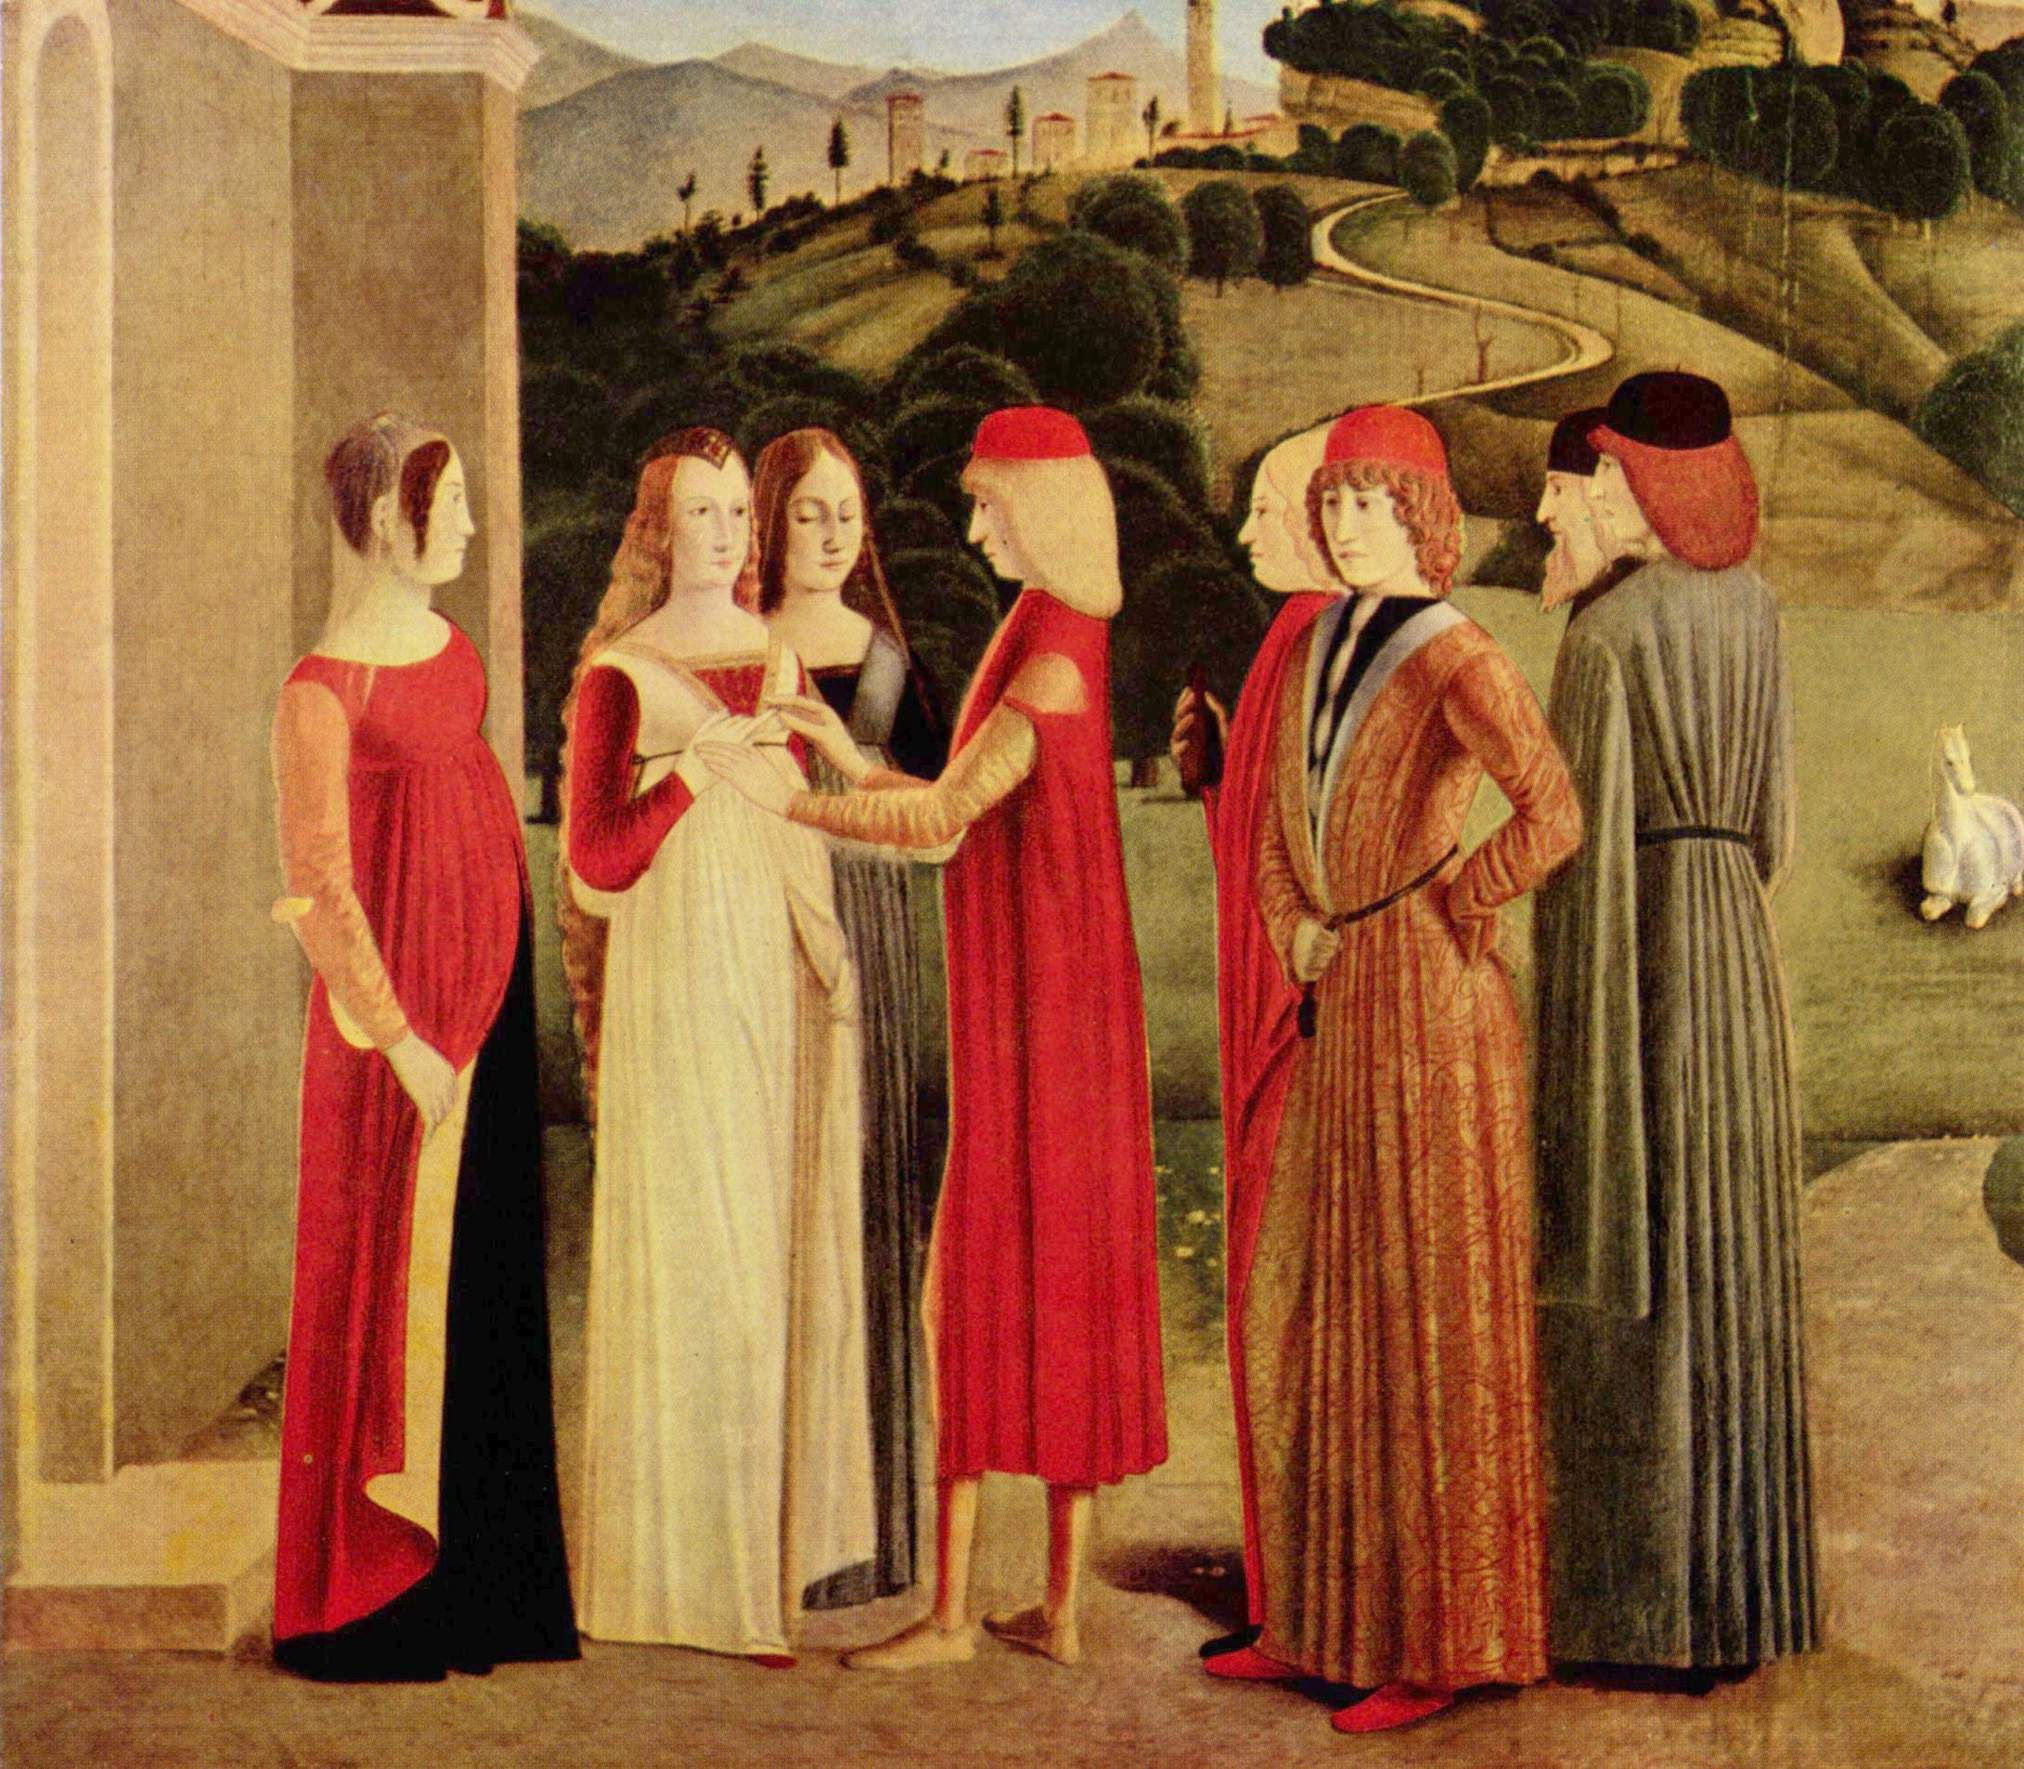 high renaissance 15th 16th 14th century when did the proto-renaissance take place 15th century the rebirth and/or revival of classical antiquity (5th century classical greece) when did the renaissance take place.